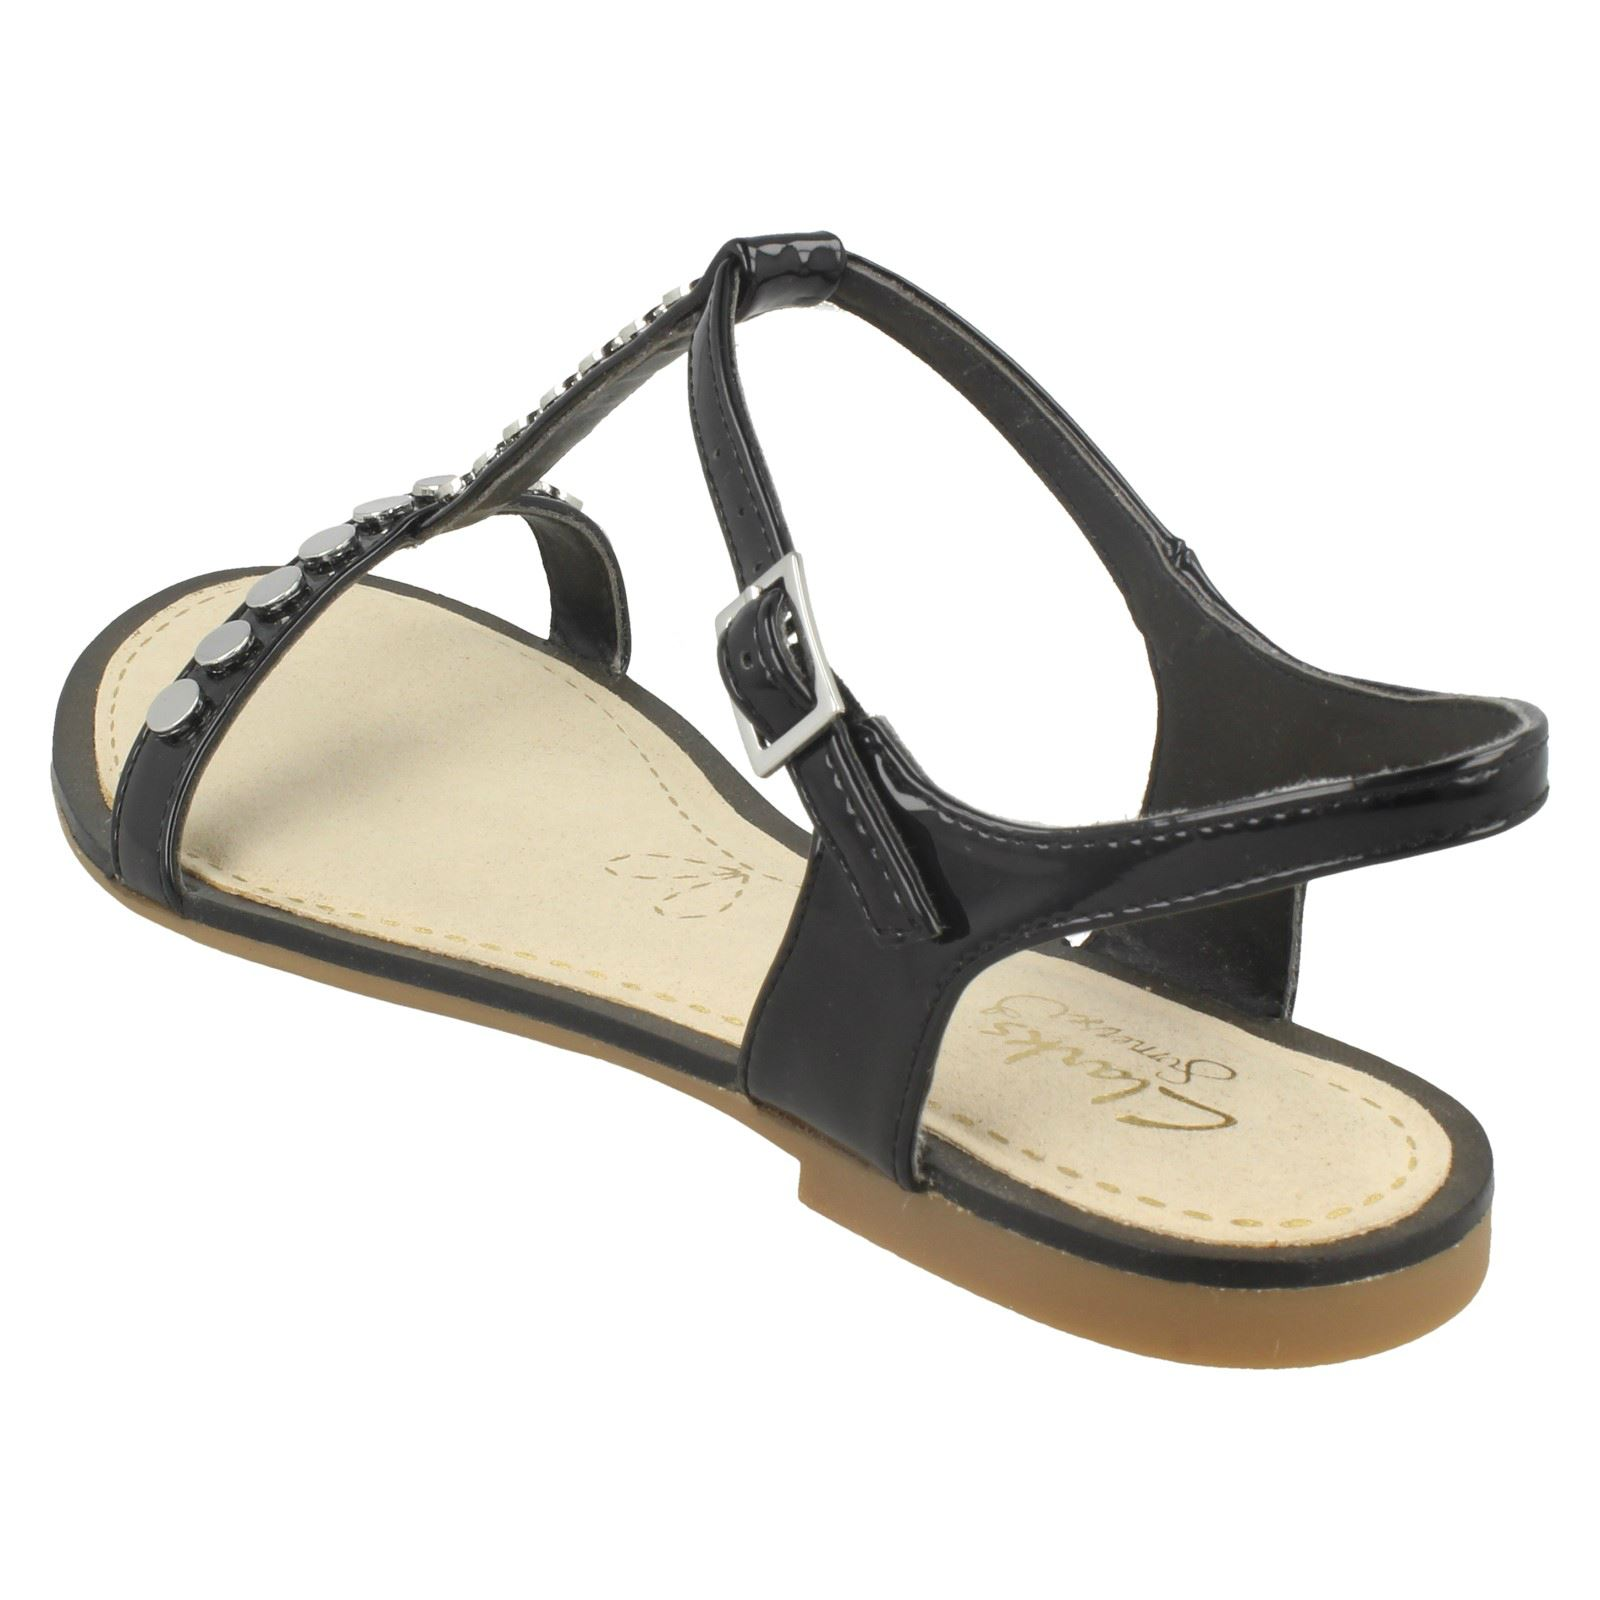 9dd405696 Ladies Clarks Flat Studded Buckled Summer Sandals Sail Festival 3 UK Black  D. About this product. Picture 1 of 10  Picture 2 of 10  Picture 3 of 10   Picture ...